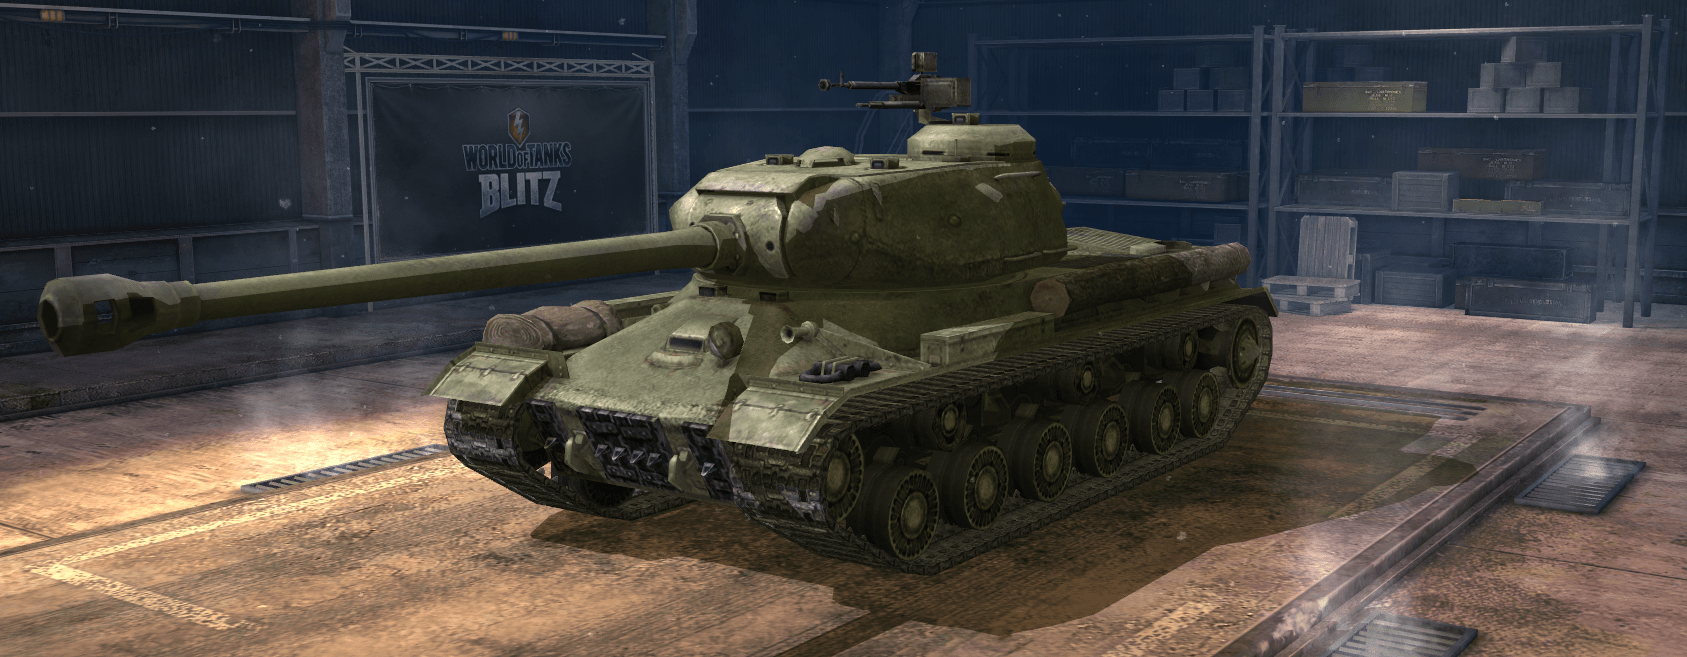 IS-2-min.png